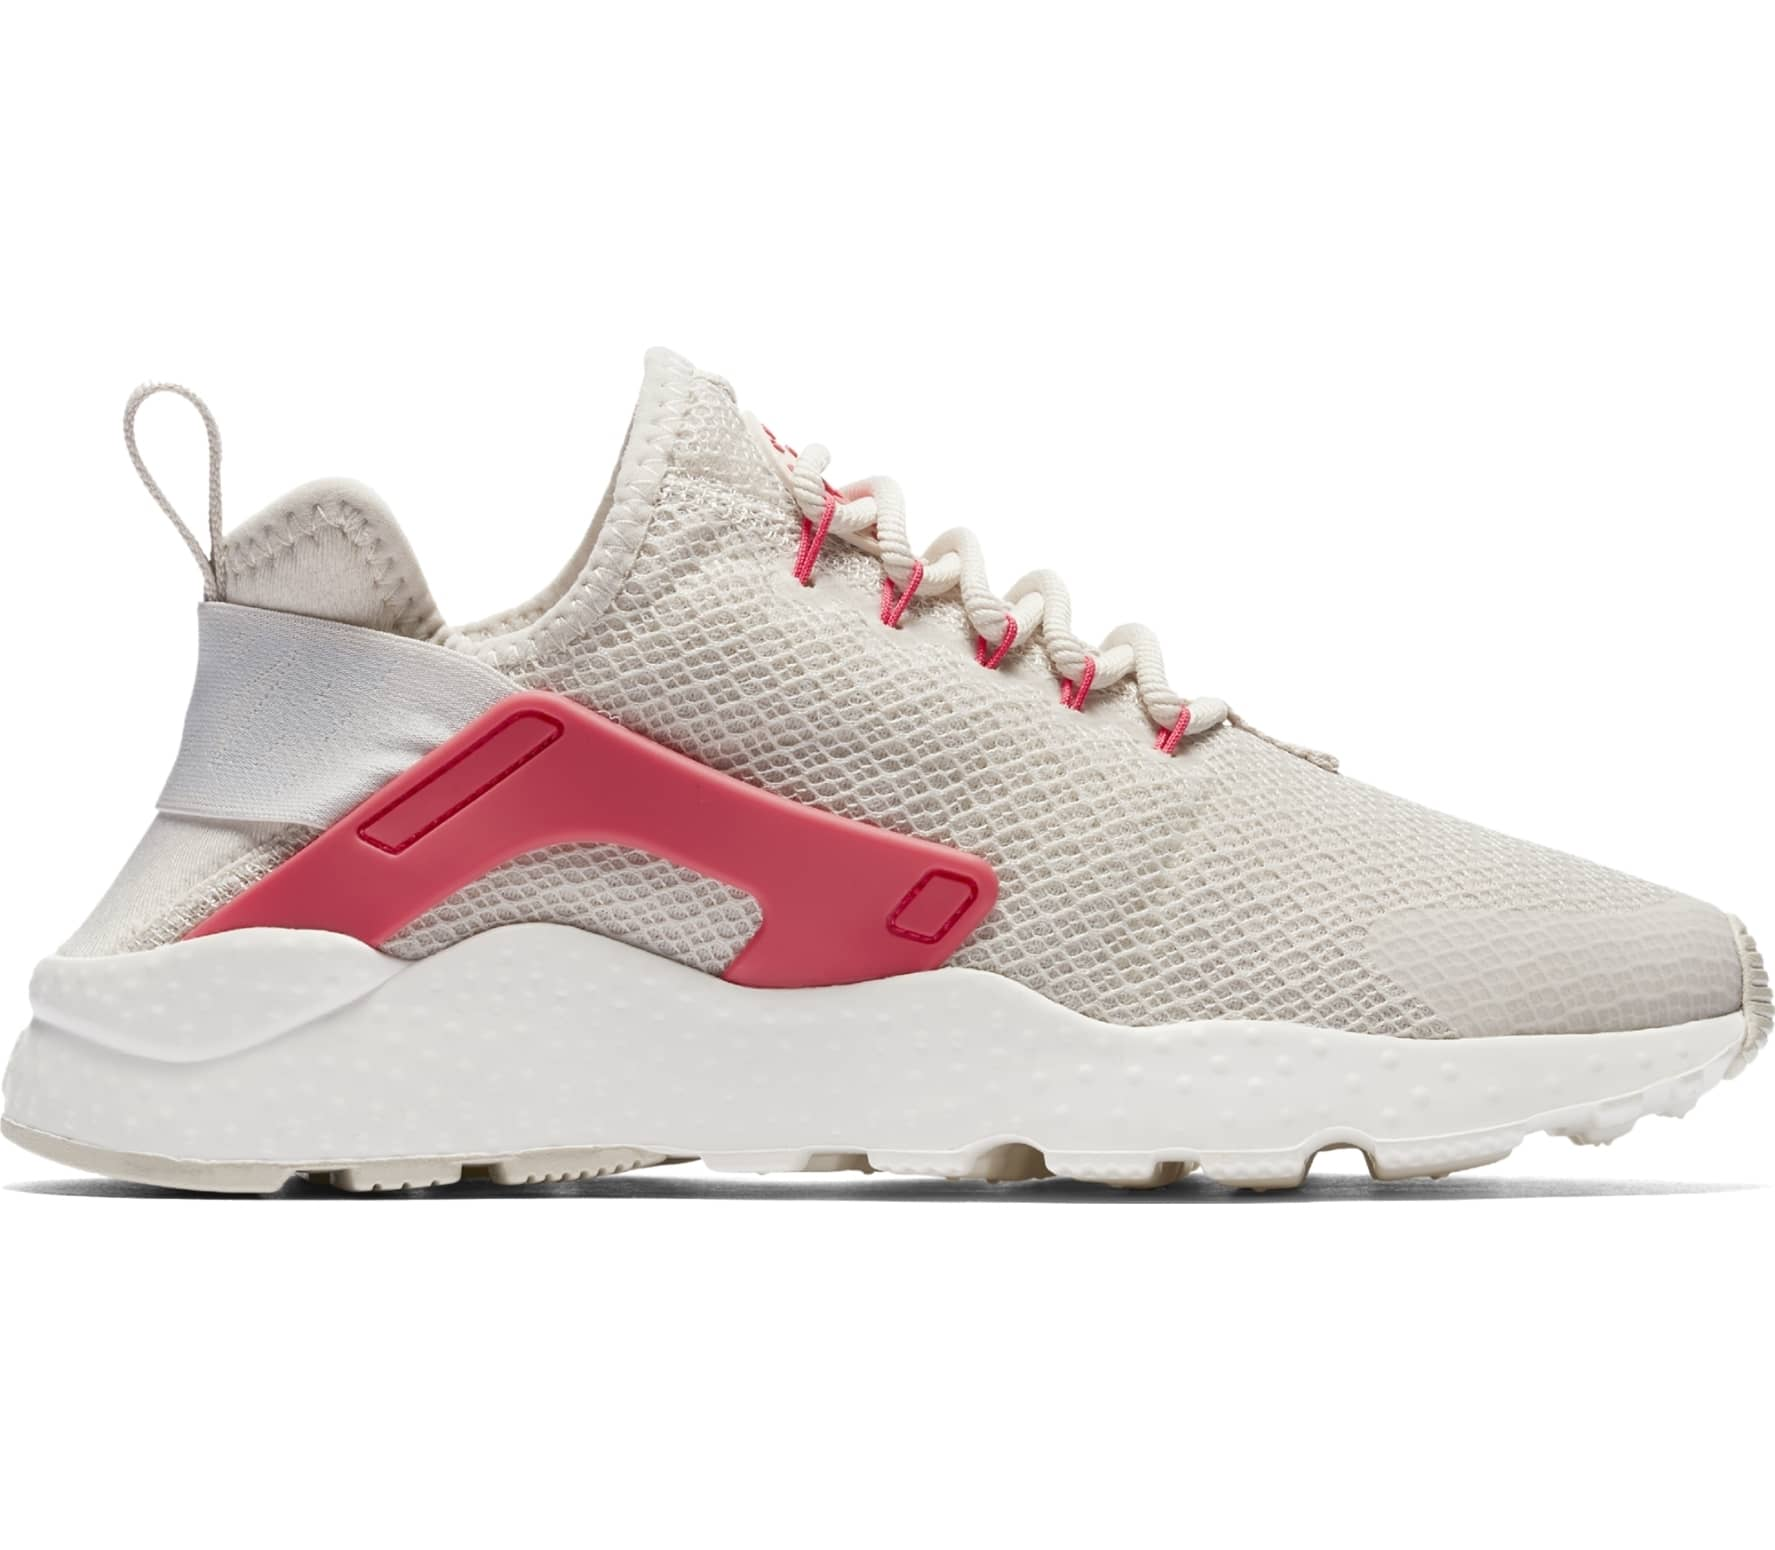 uk availability 1de6b 0ed47 Nike - Air Huarache Run Damen Sneaker (weiß/rot) im Online Shop von ...